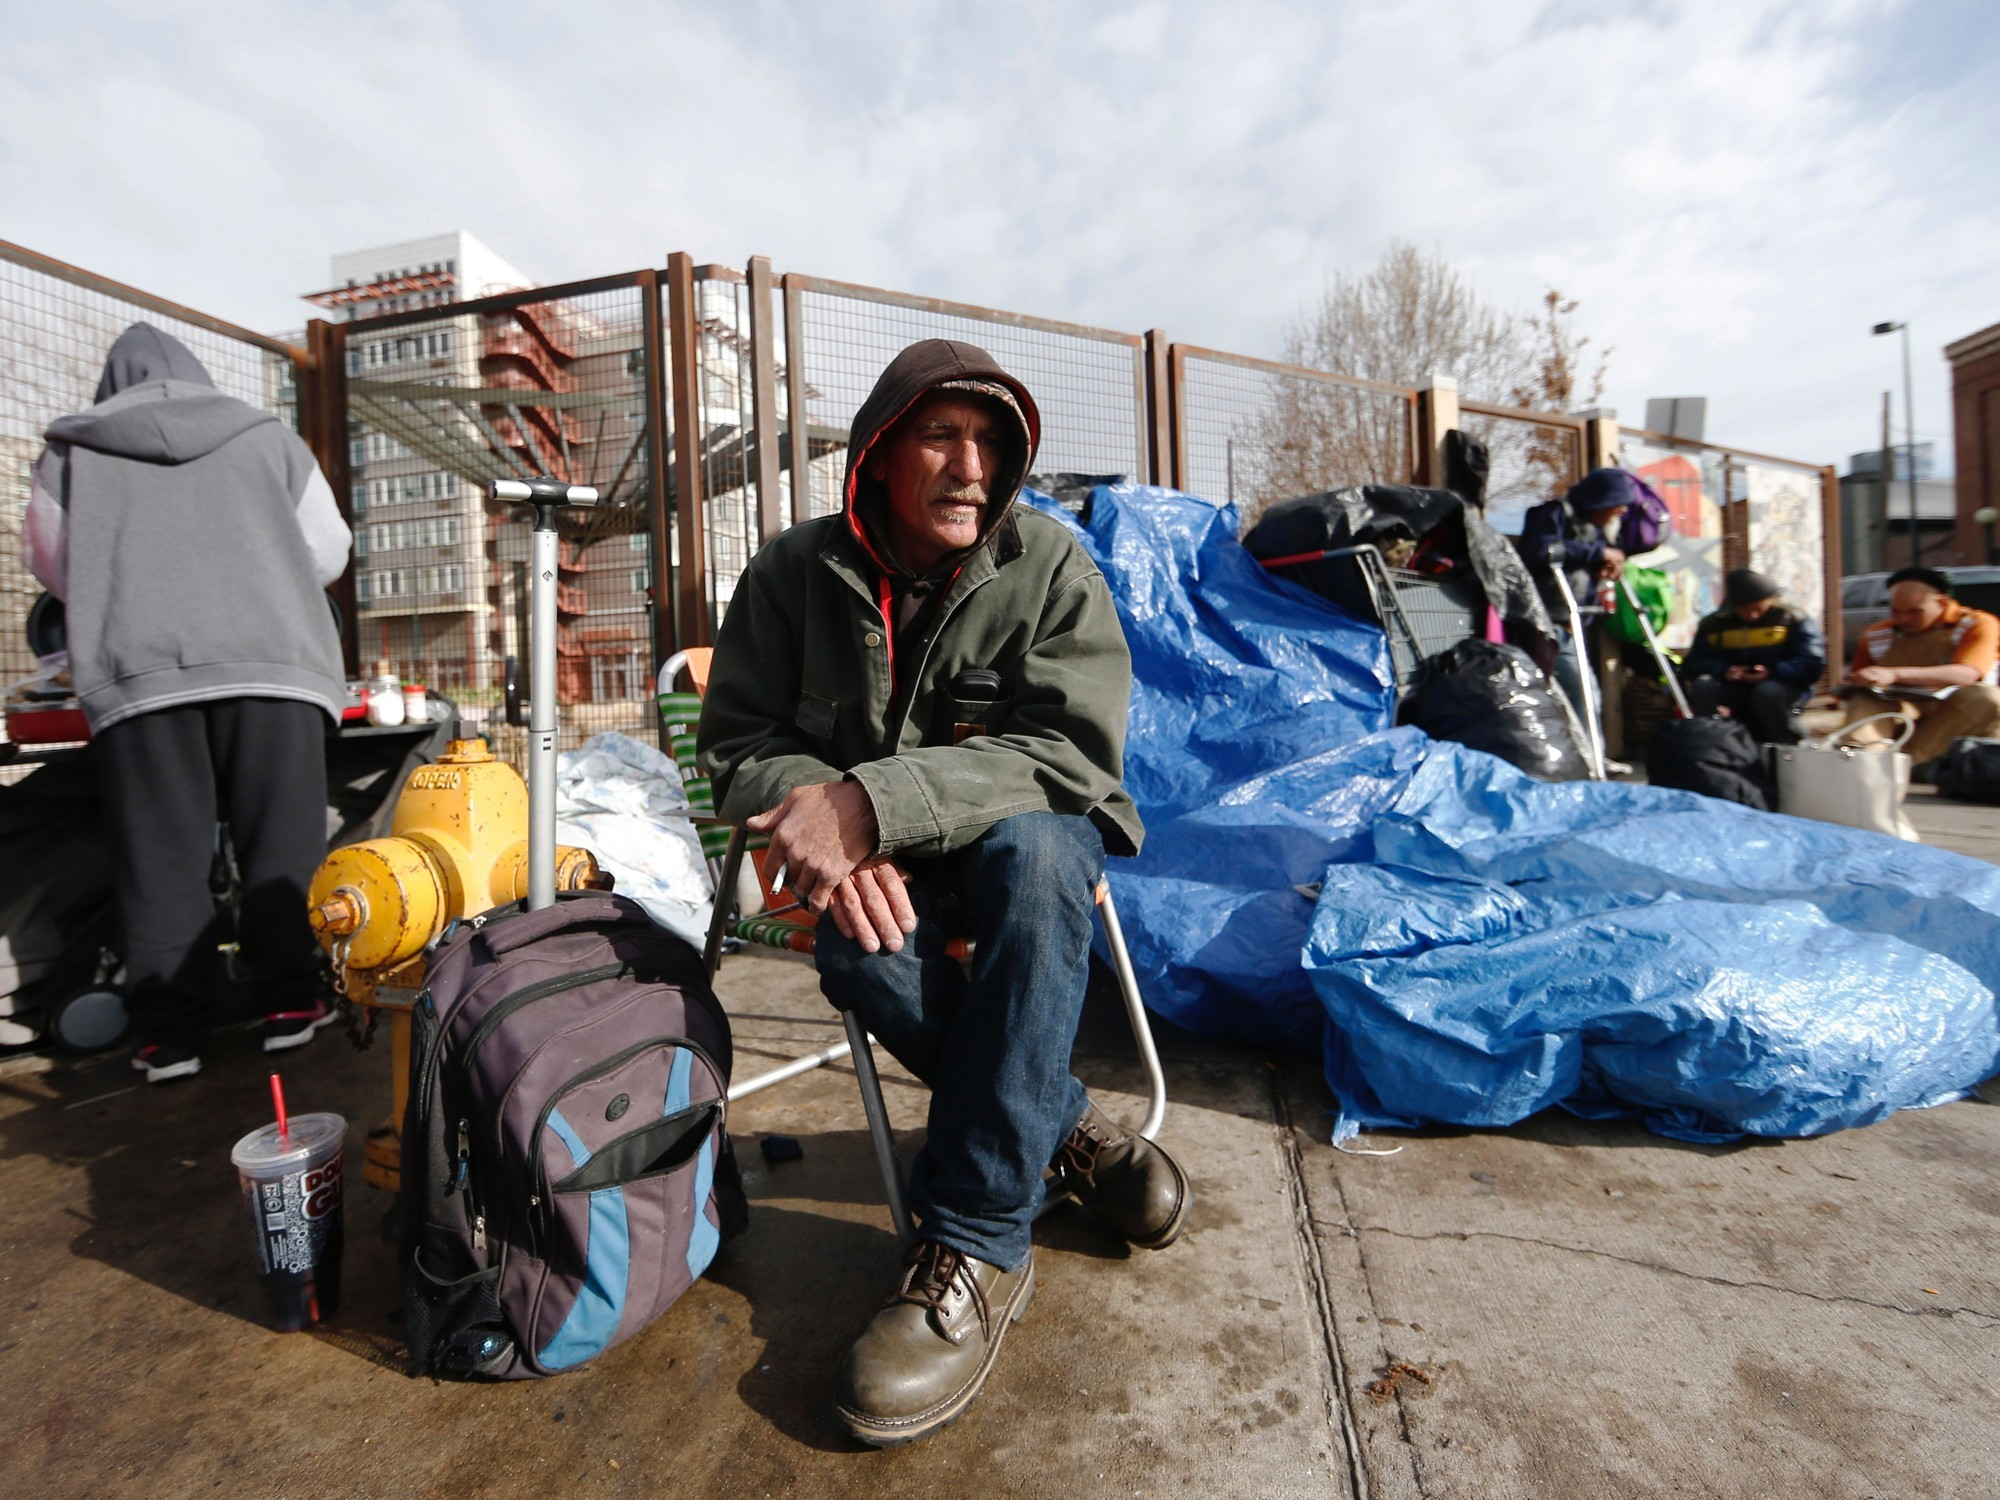 Colorado Using $3 Million in Tax Revenue To Feed and House the Homeless